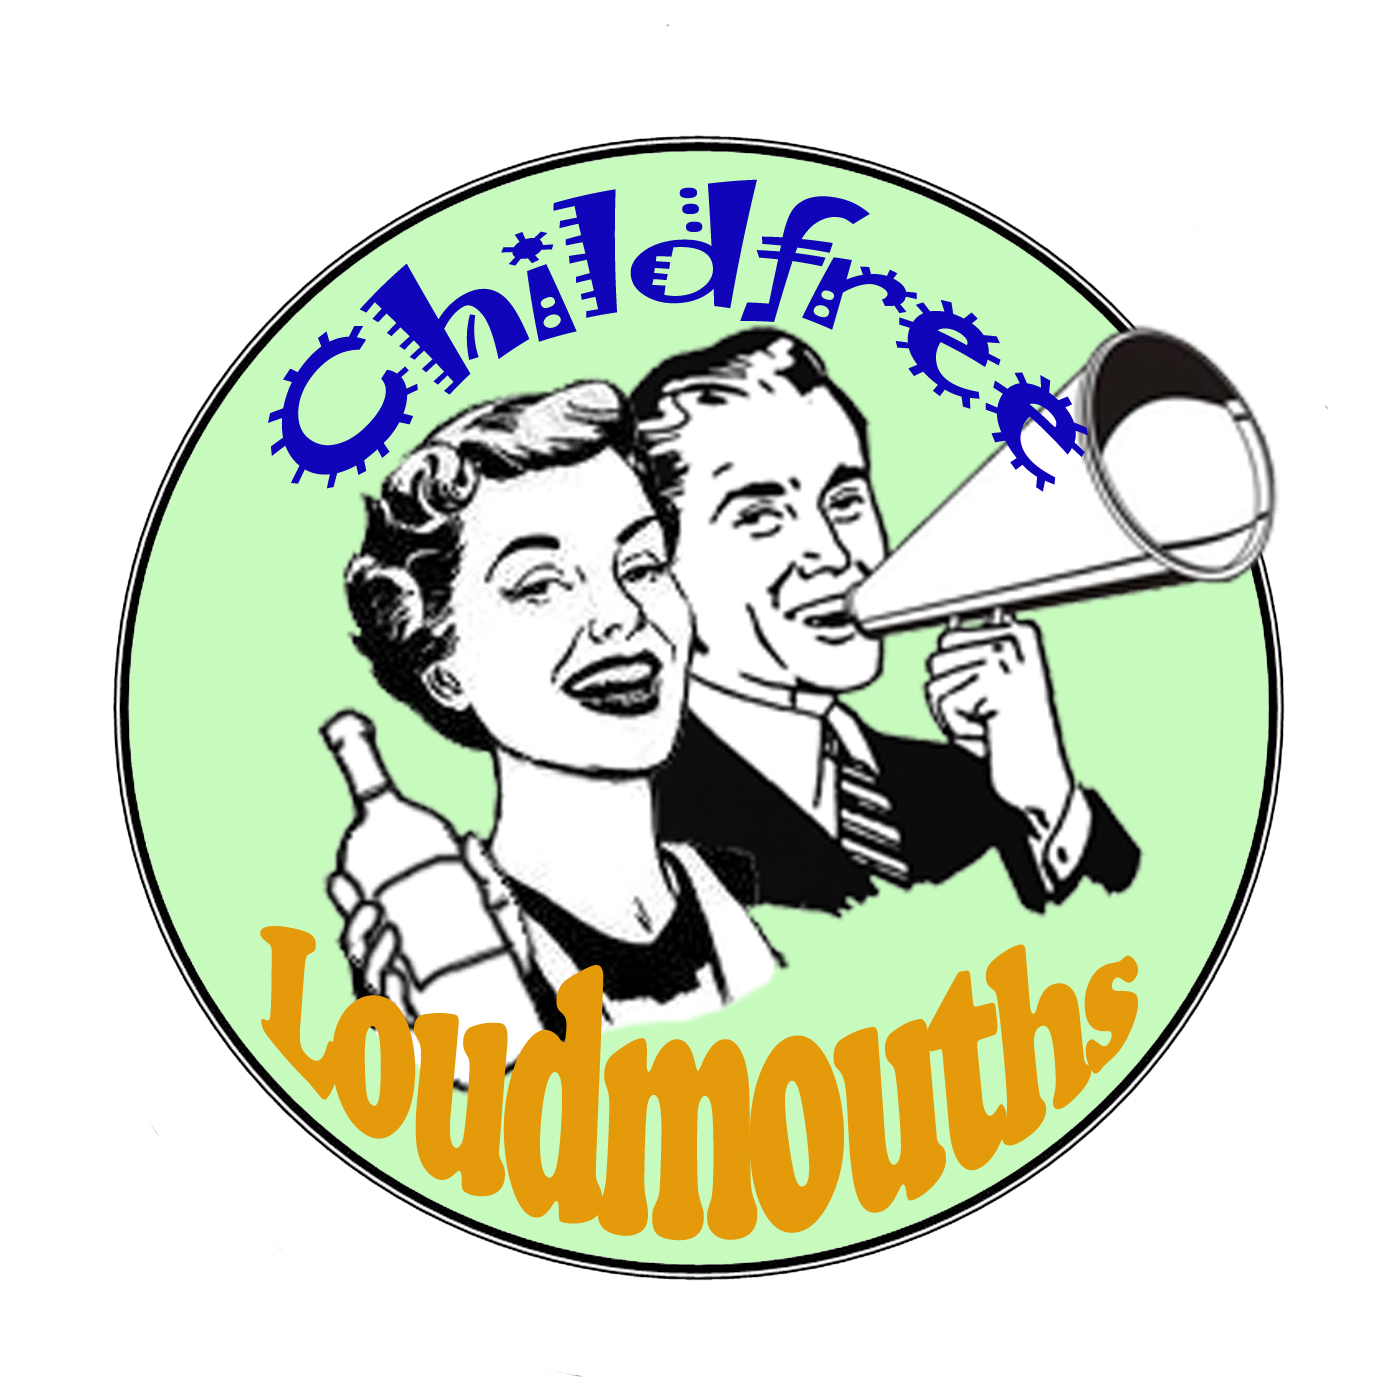 Childfree Loudmouths Podcast